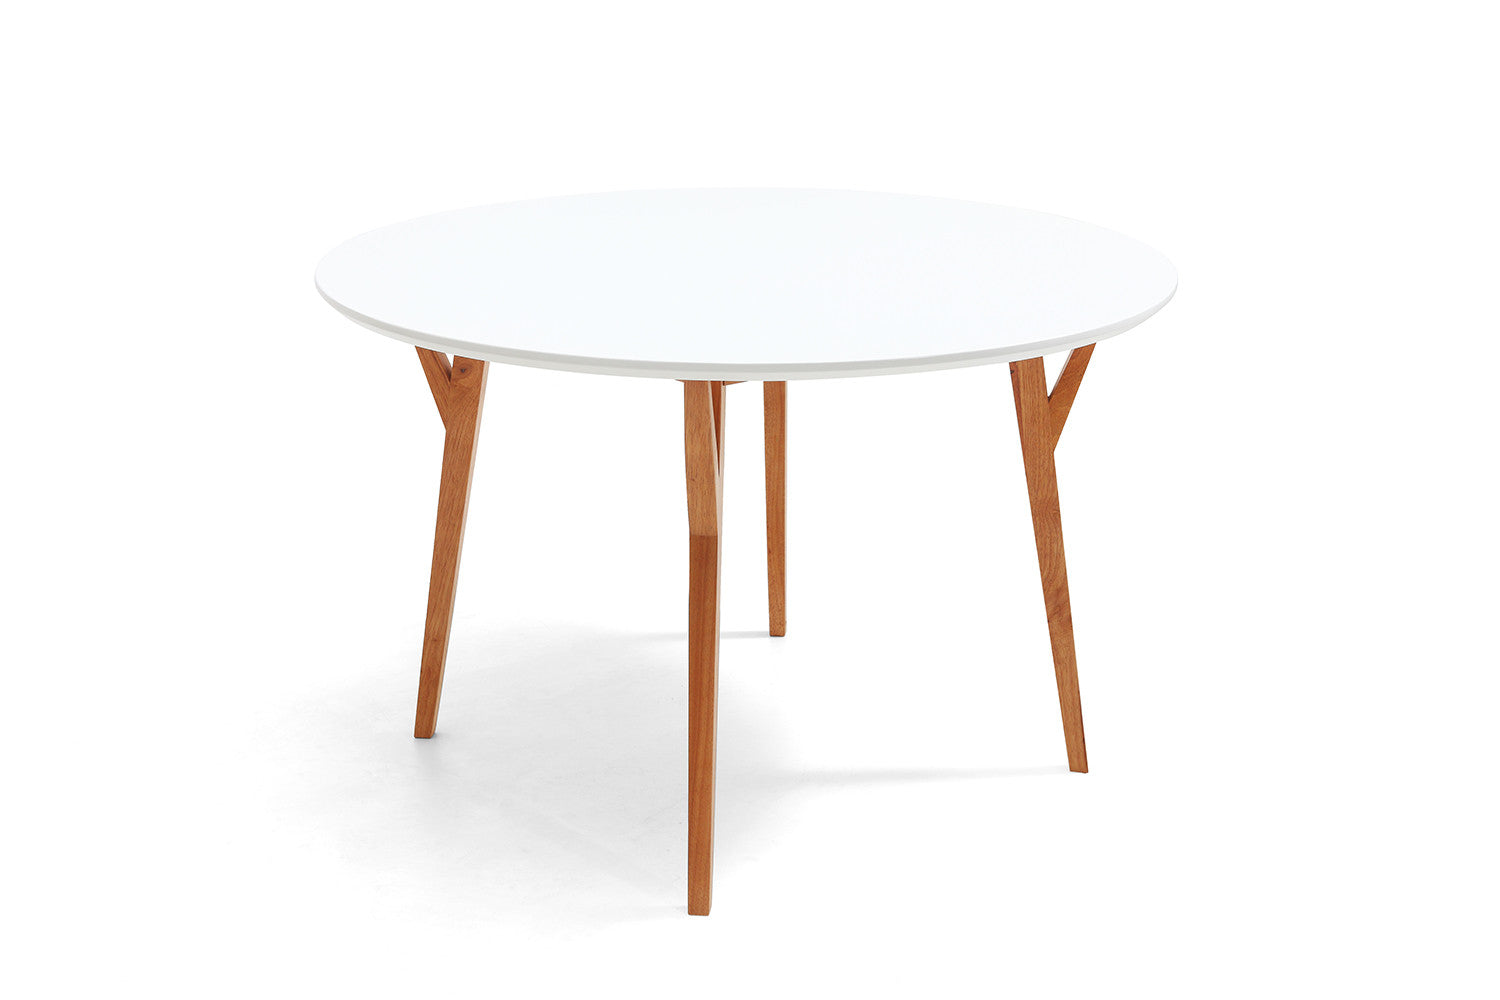 Table de salle manger ronde design scandinave moesa for Table salle a manger gain de place